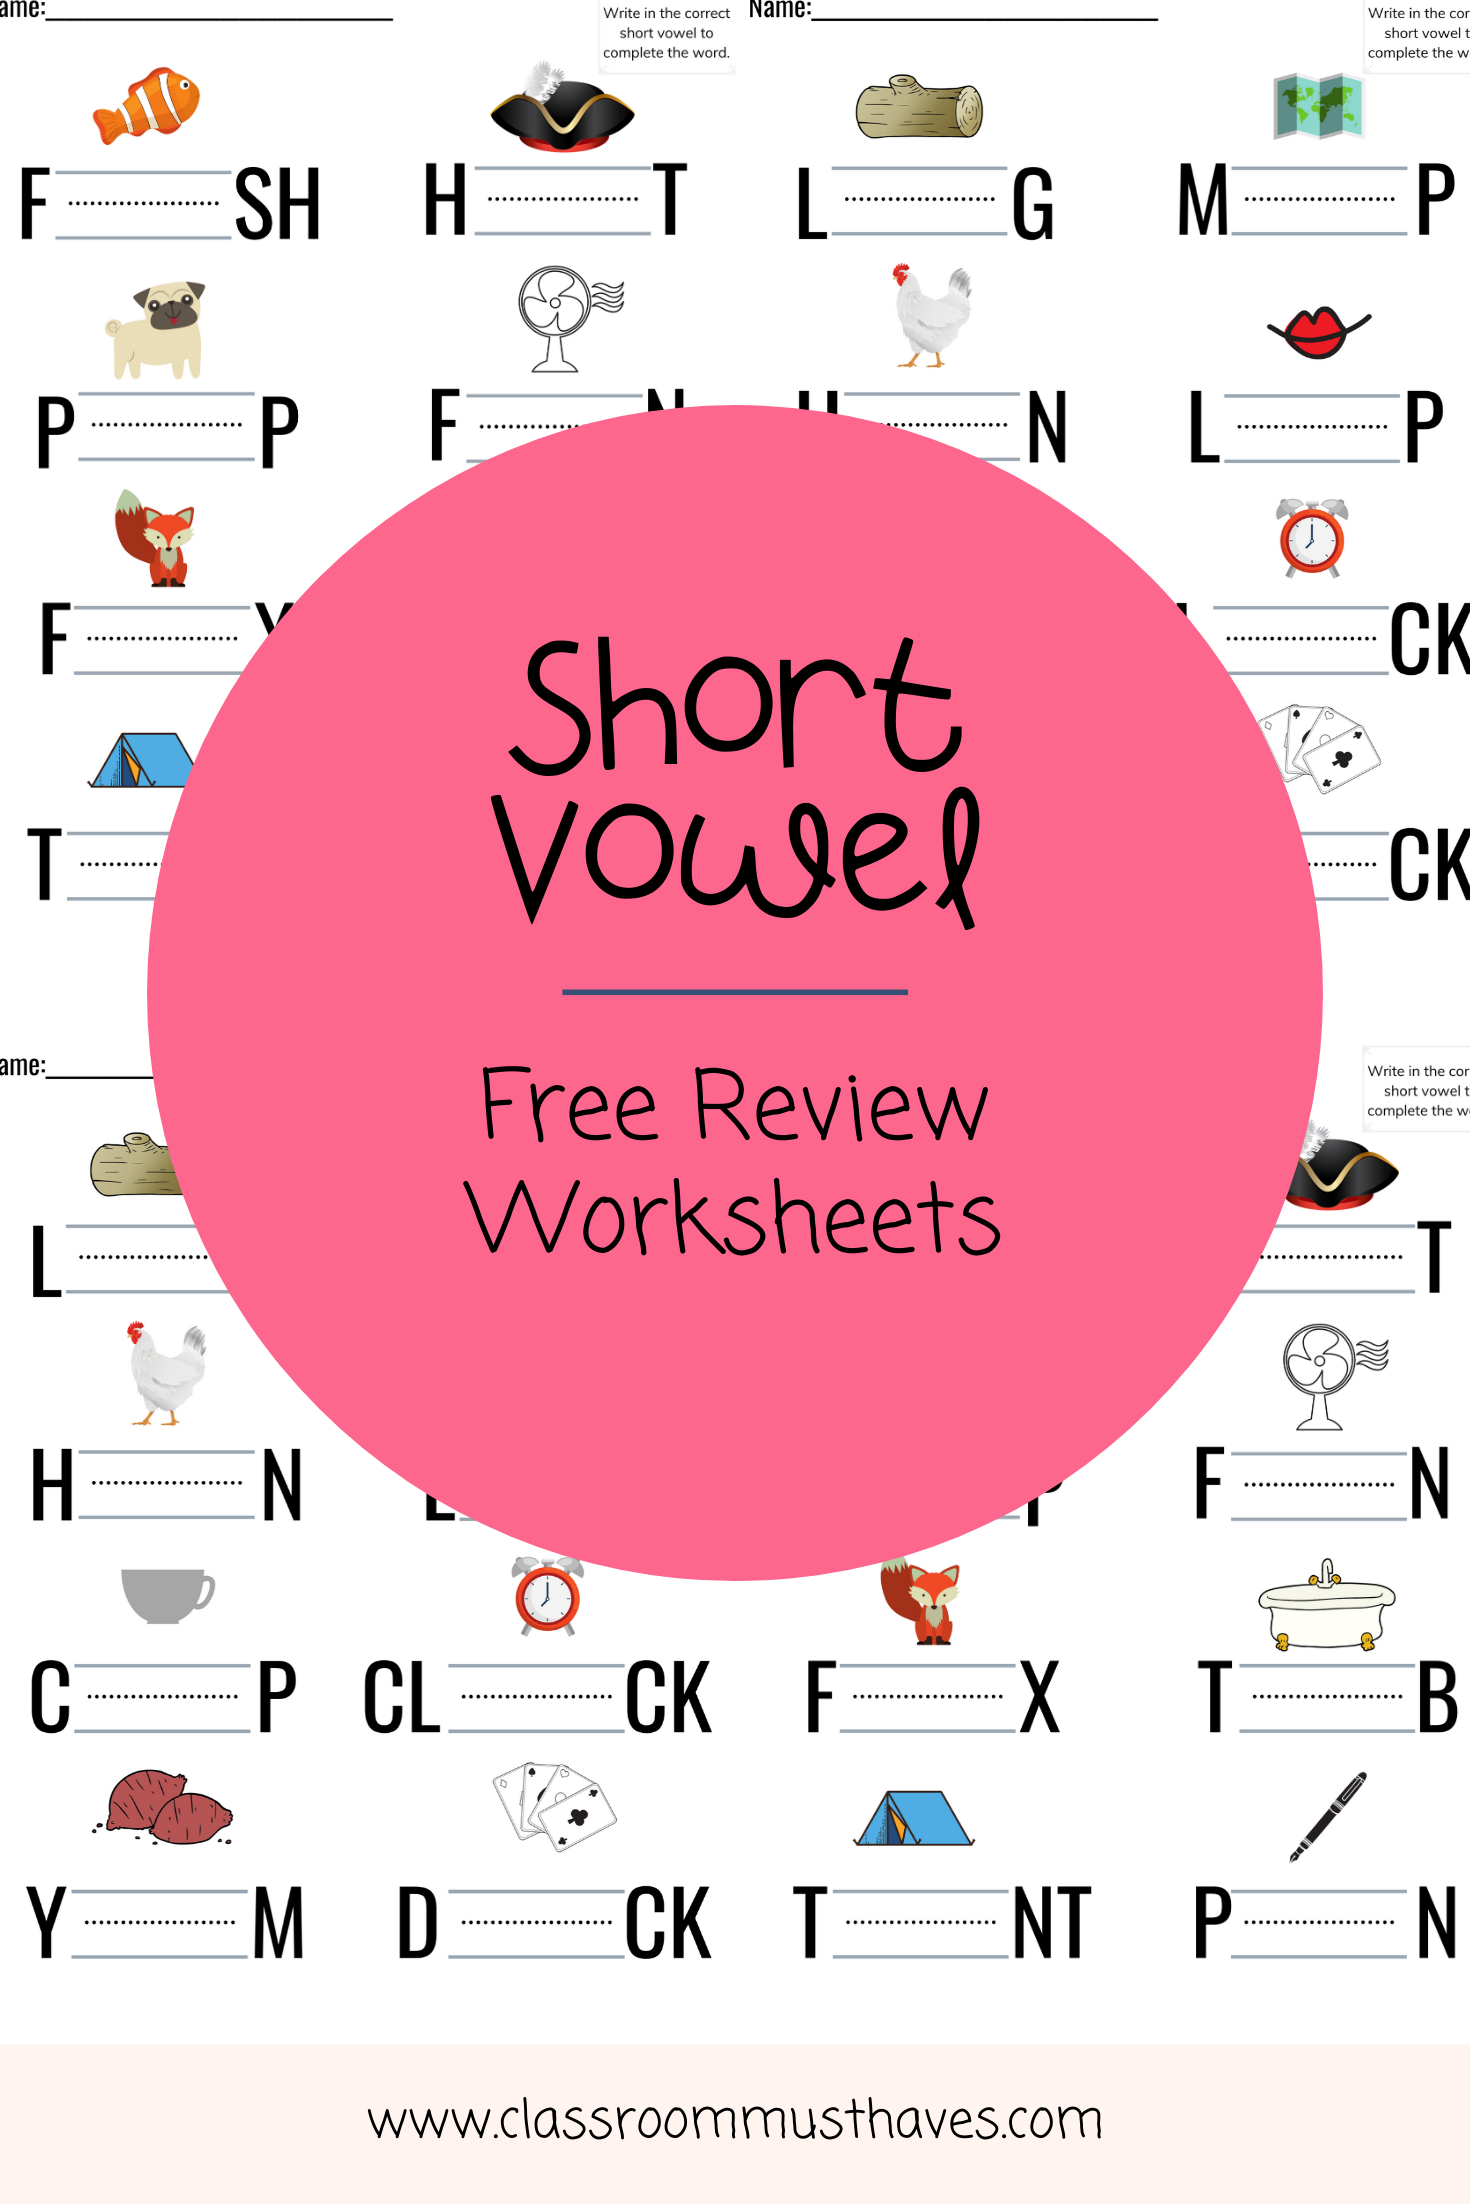 Free Short Vowel Review Worksheets Assroommusthaves